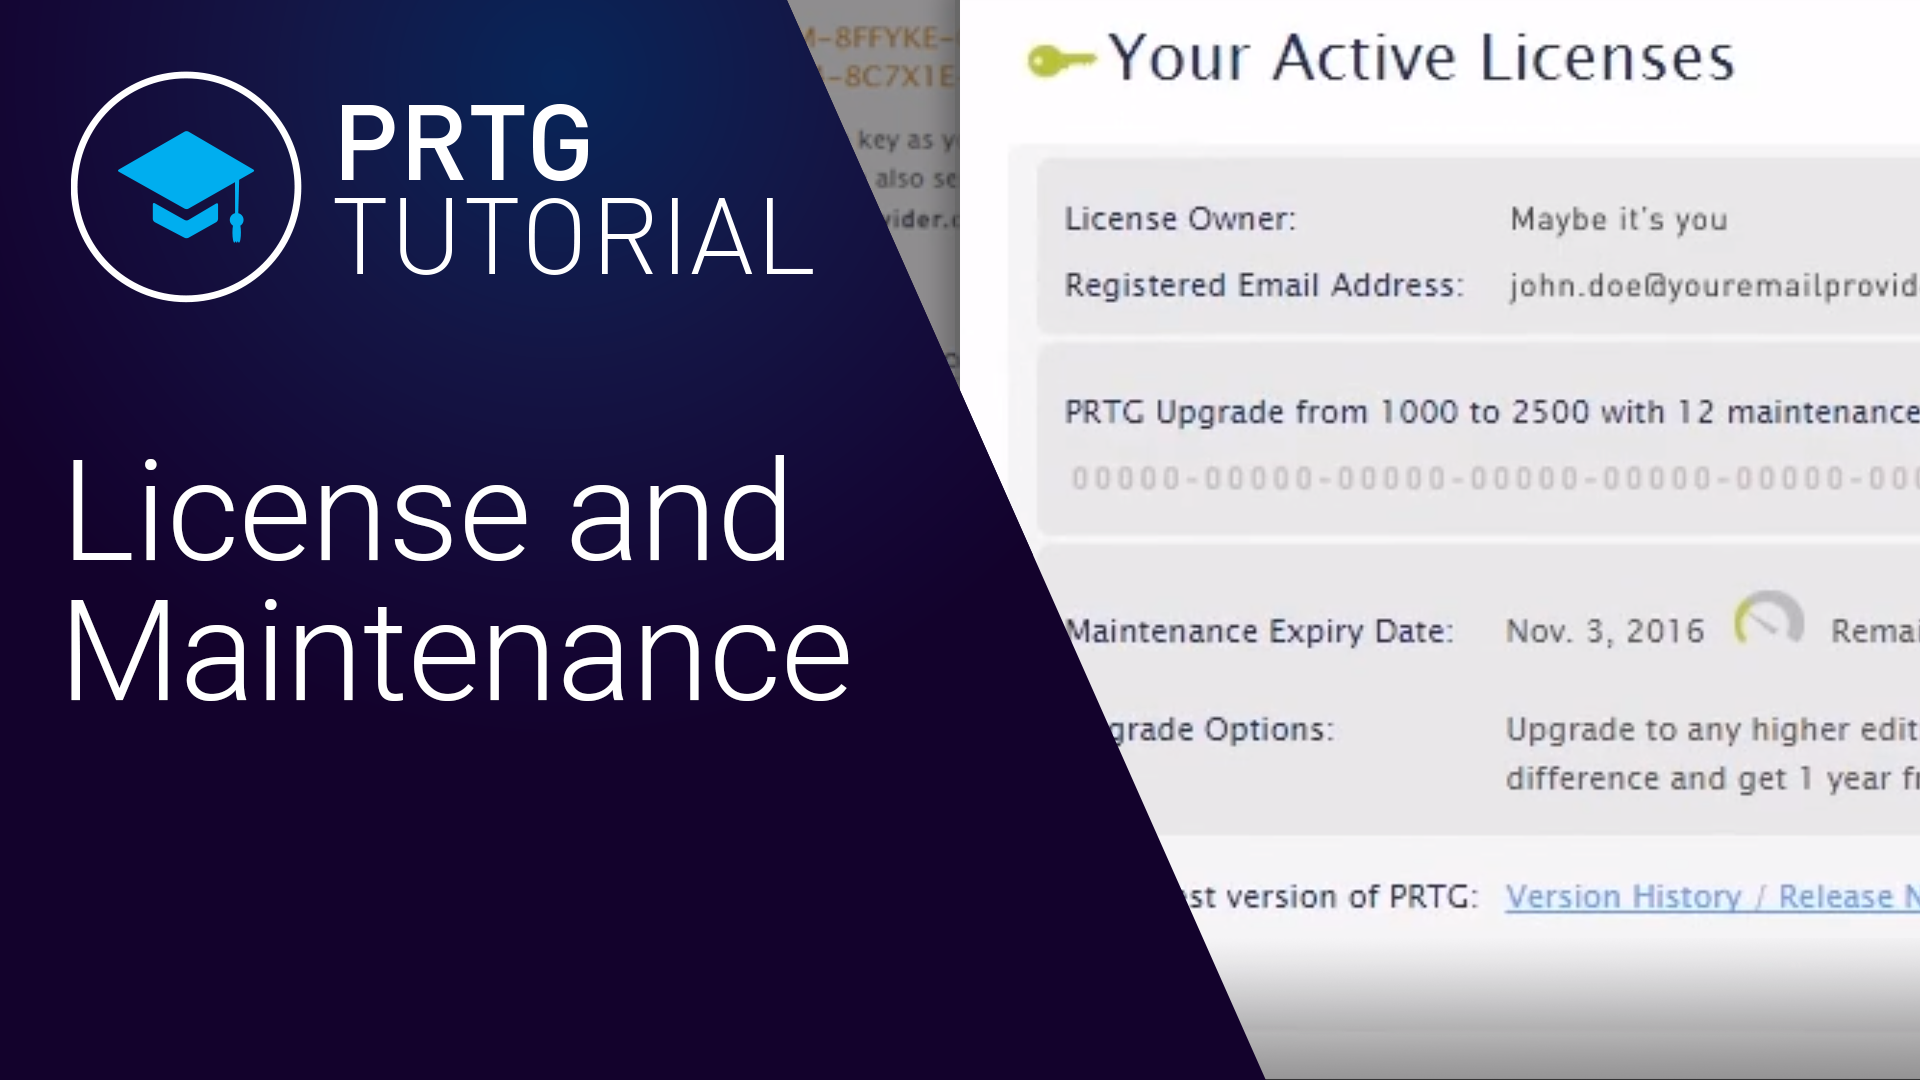 Video: License and maintenance in PRTG (Videos, Overview)